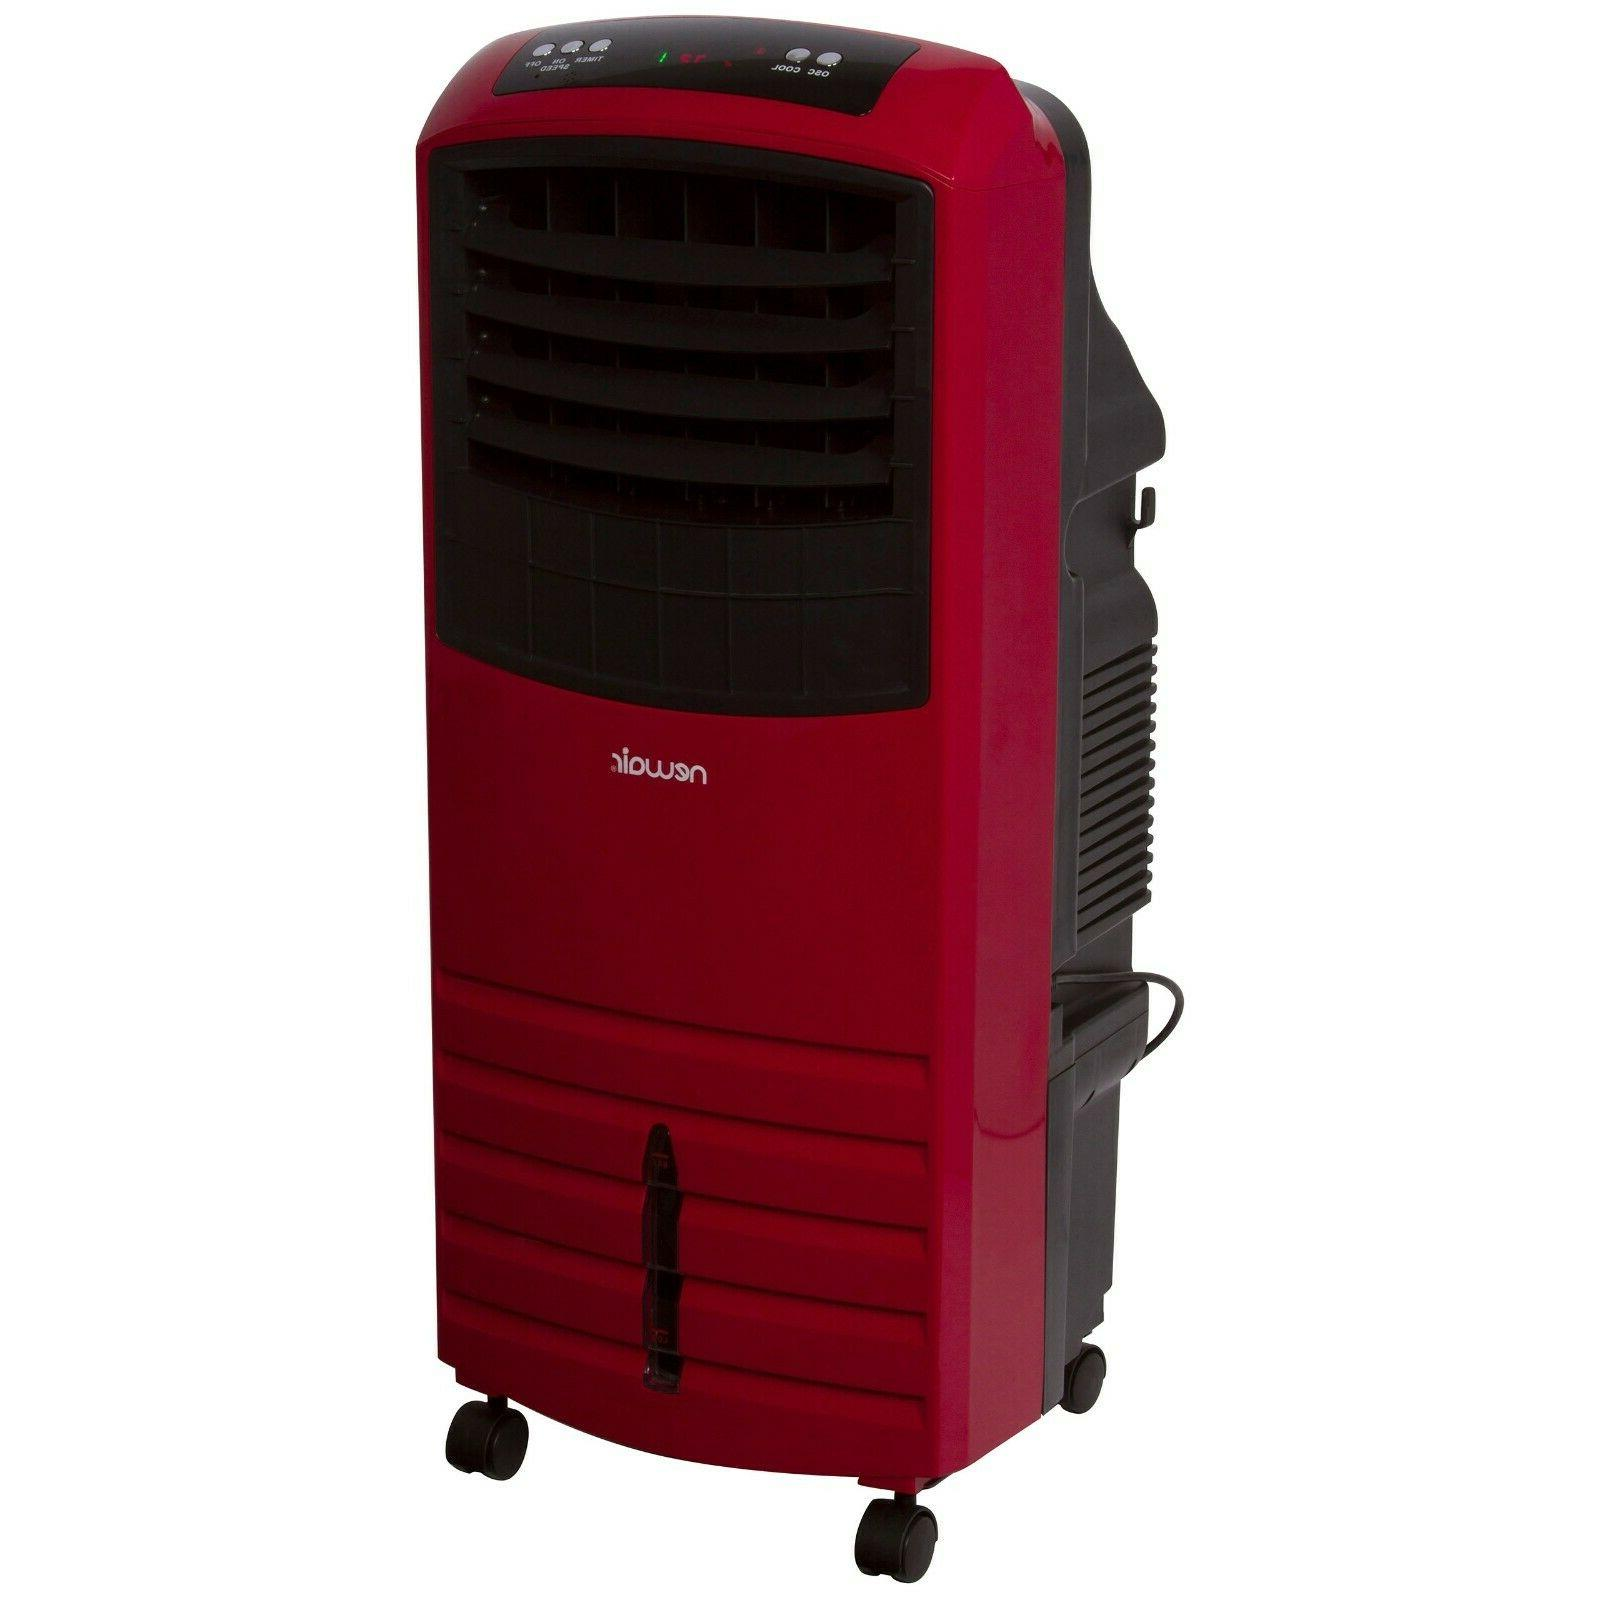 BLACK + DECKER 14000 BTU Portable Air Conditioner Unit + 110